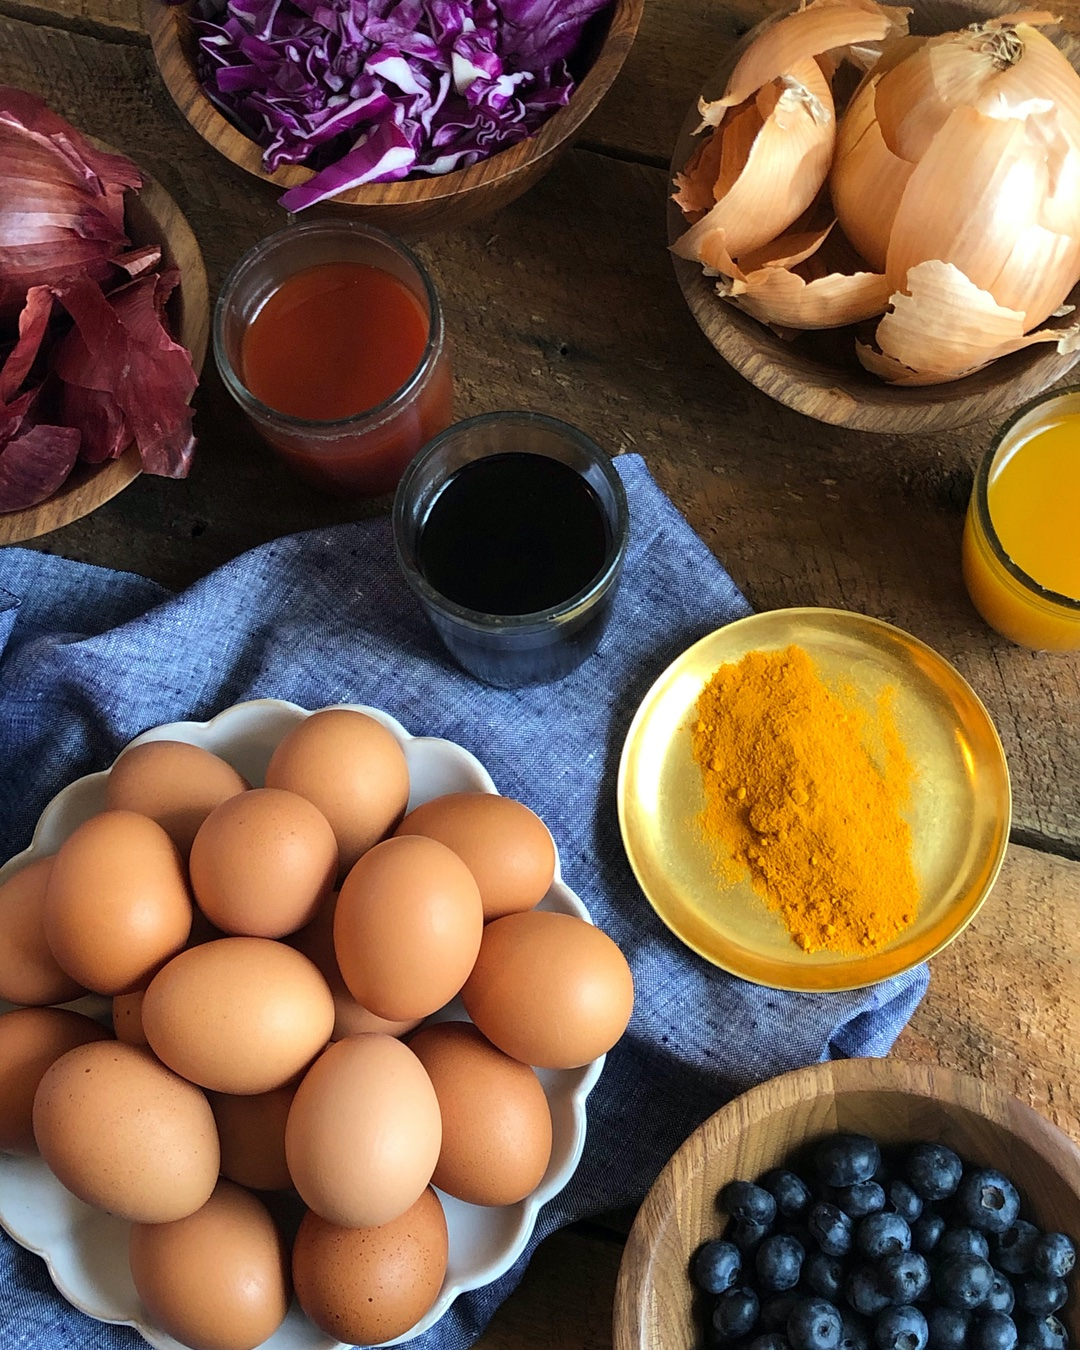 dye-eggs-naturally-ig-ingredients